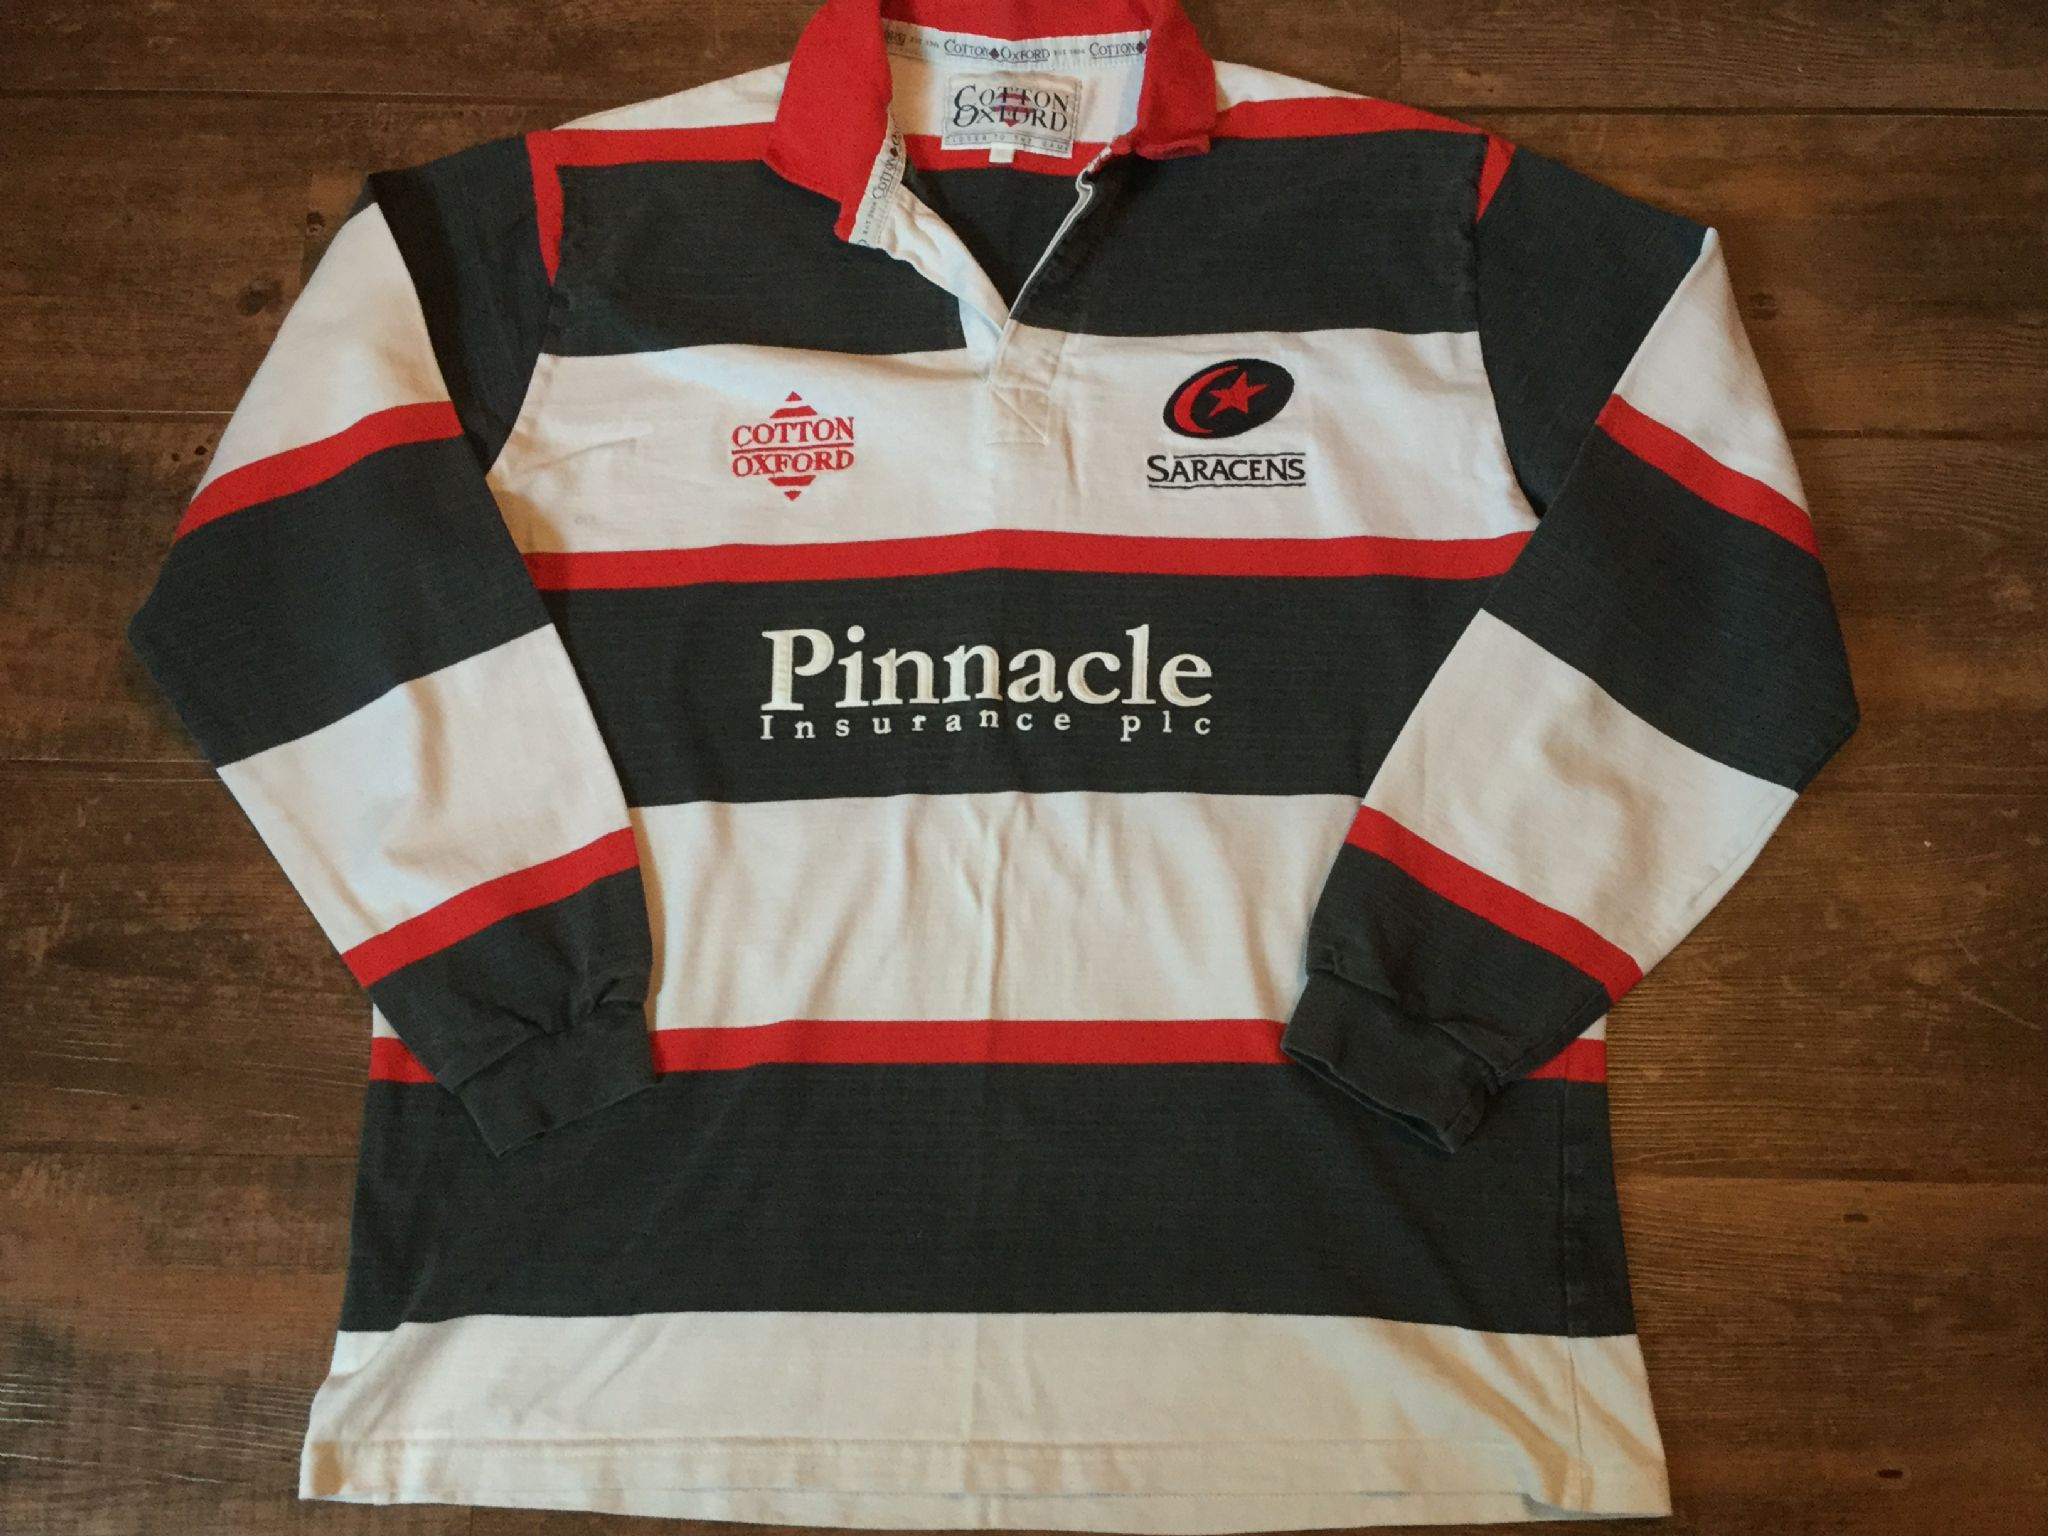 https://www.classicrugbyshirts.com/ekmps/shops/adrianstapley/images/1996-1997-saracens-l-s-rugby-union-away-shirt-adults-xl-9239-p.jpg